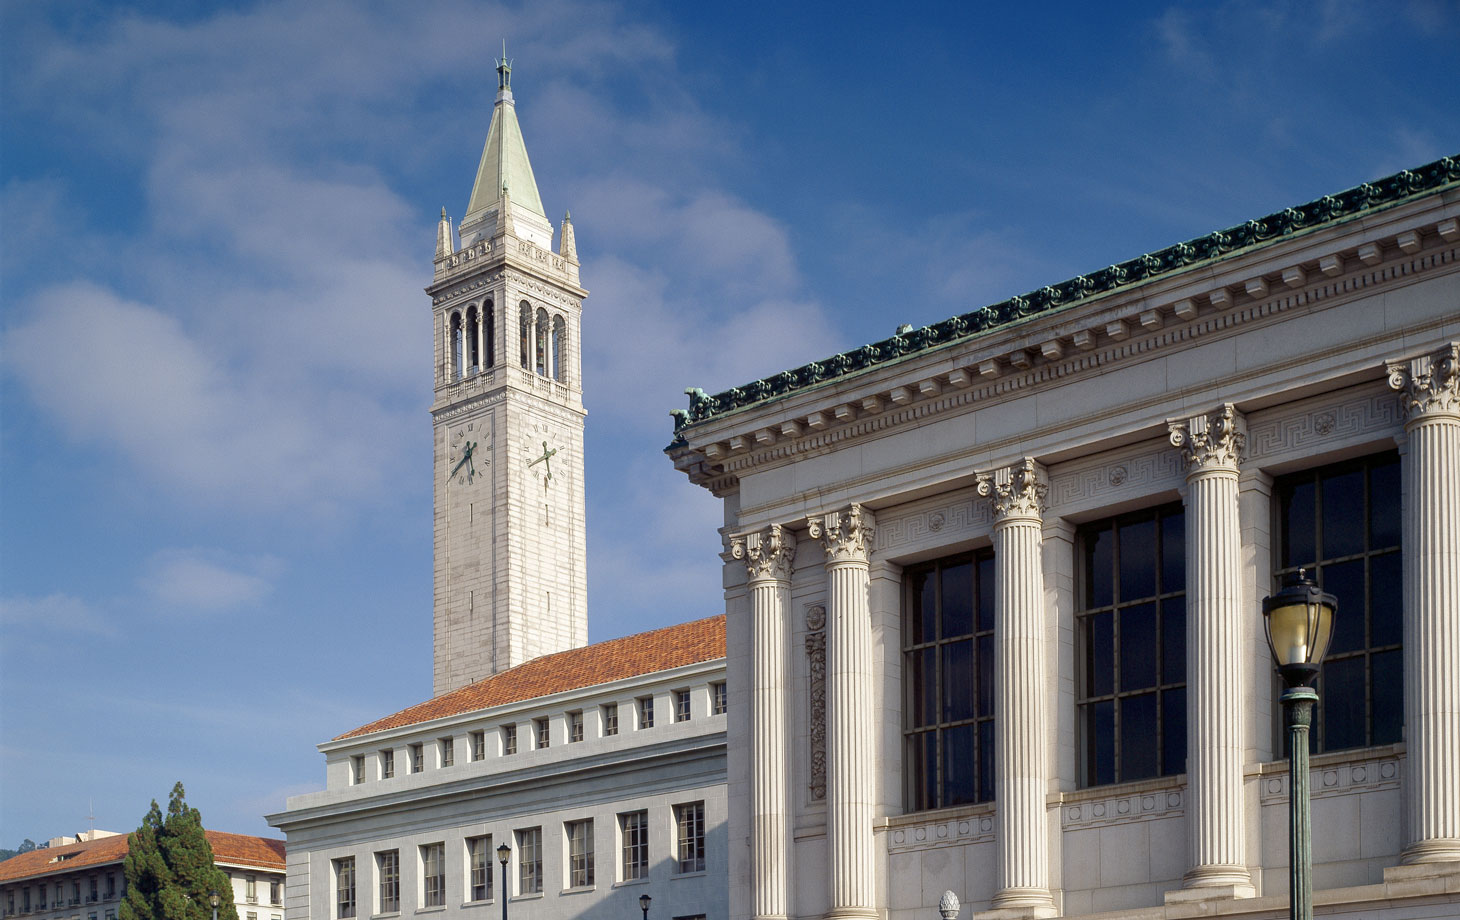 Bancroft library and Sather tower